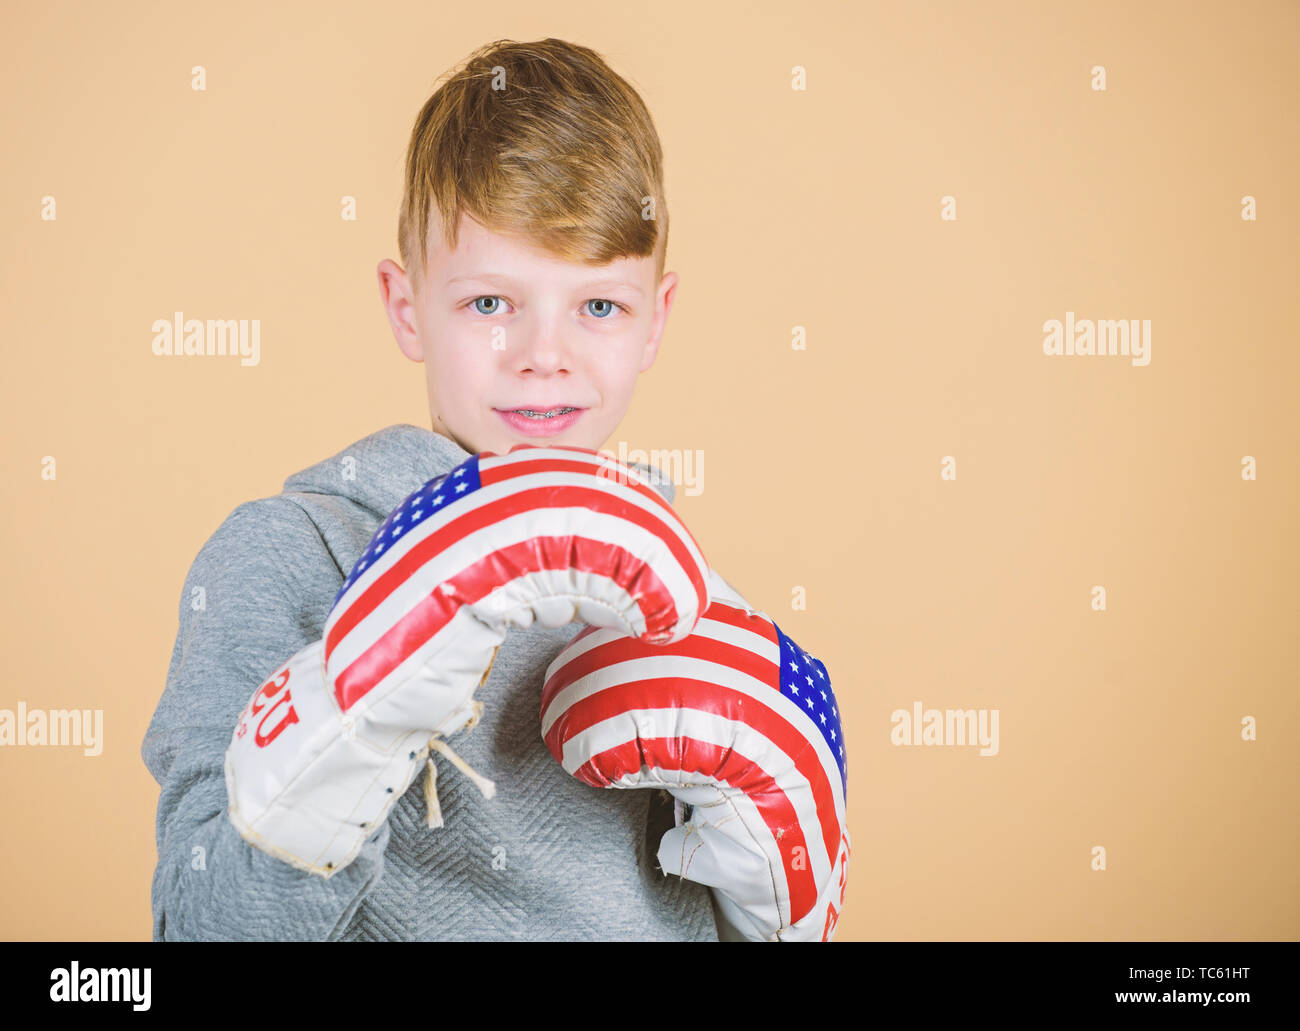 no pain no gain. Fitness diet. energy health. Sport success. sportswear. workout of small boy boxer. usa independence day. child sportsman in boxing gloves. punching knockout. Childhood activity. - Stock Image